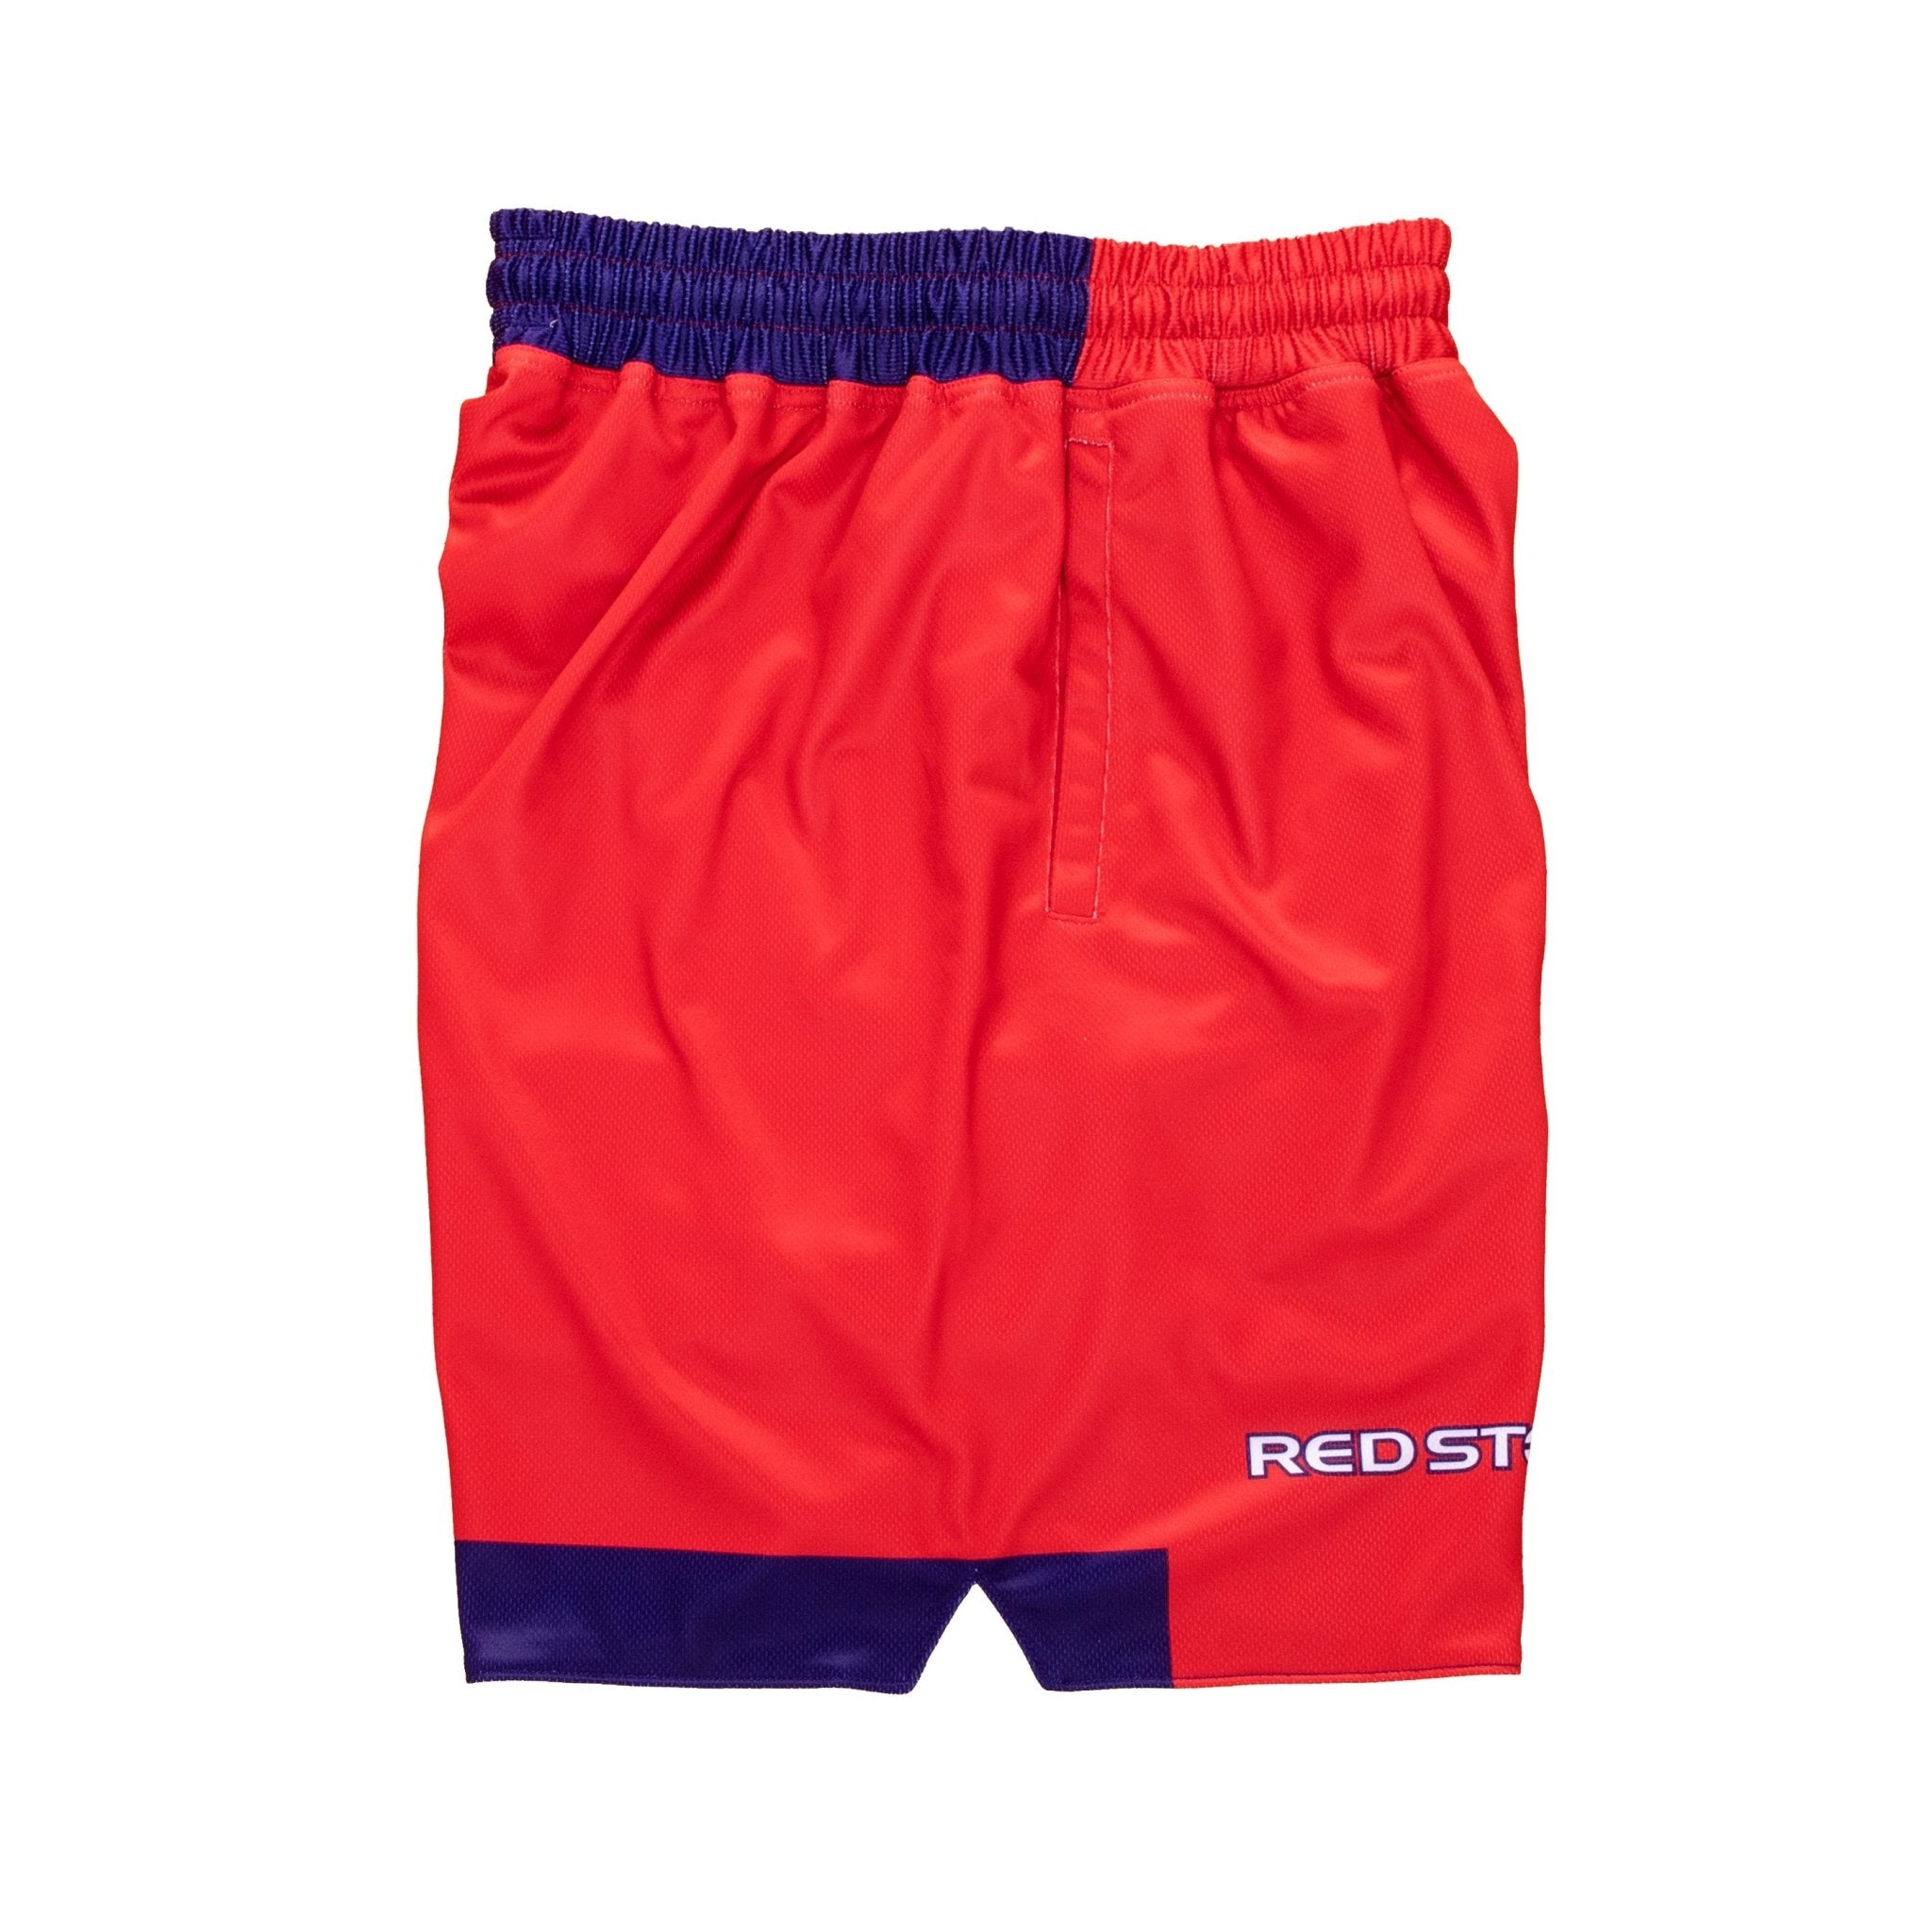 St. John's Red Storm 1998-1999 Retro Shorts - SLAM